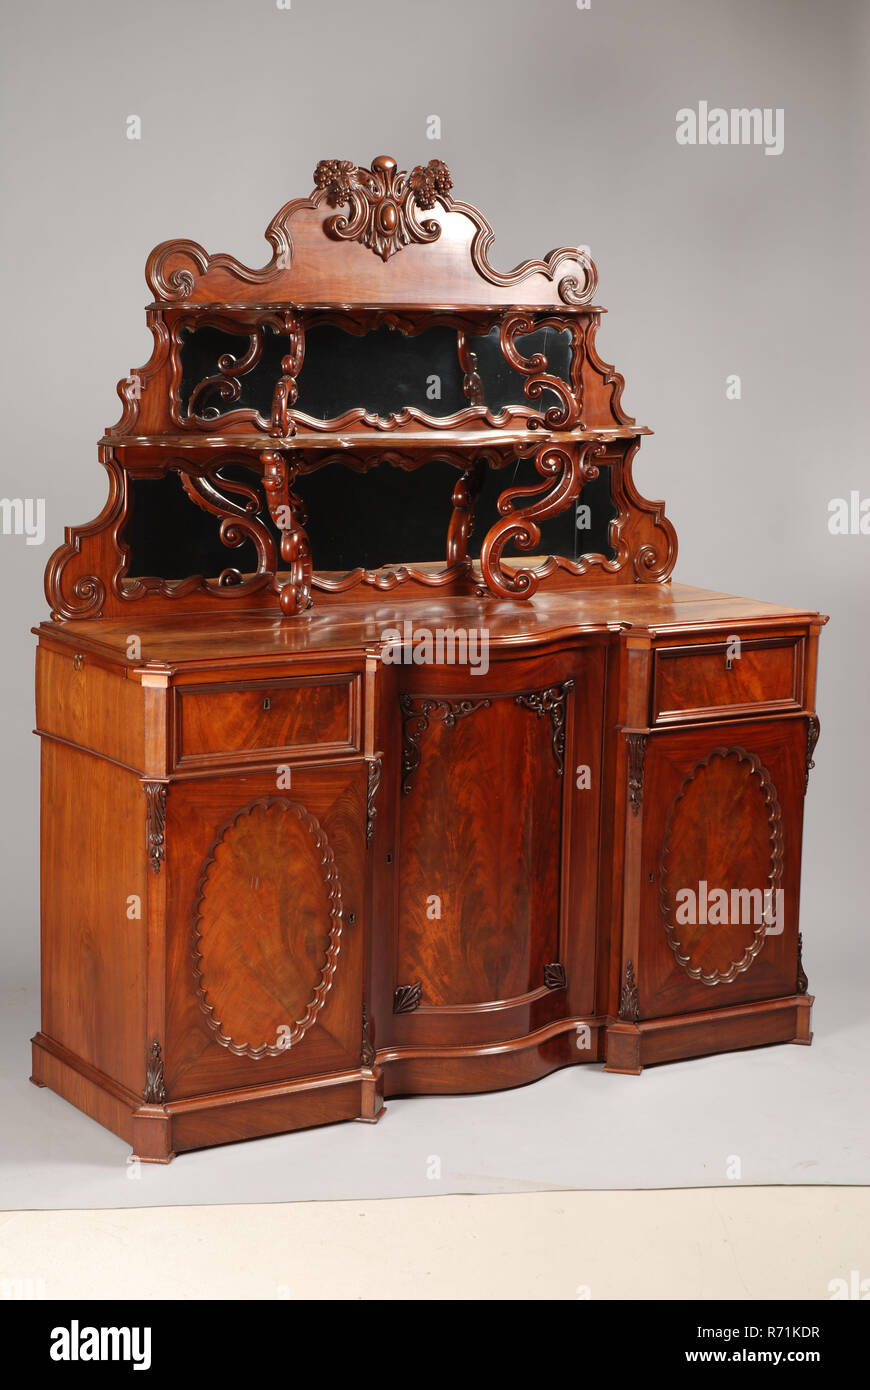 Picture of: Neo Rococo Dining Room Buffet Sideboard Cupboard Cabinet Furniture Furniture Interior Design Wood Mahogany Oak Wood Brass Glass Neo Rococo Dining Room Buffet With Upright With Two Shelves Supported By Volutes Back Wall With